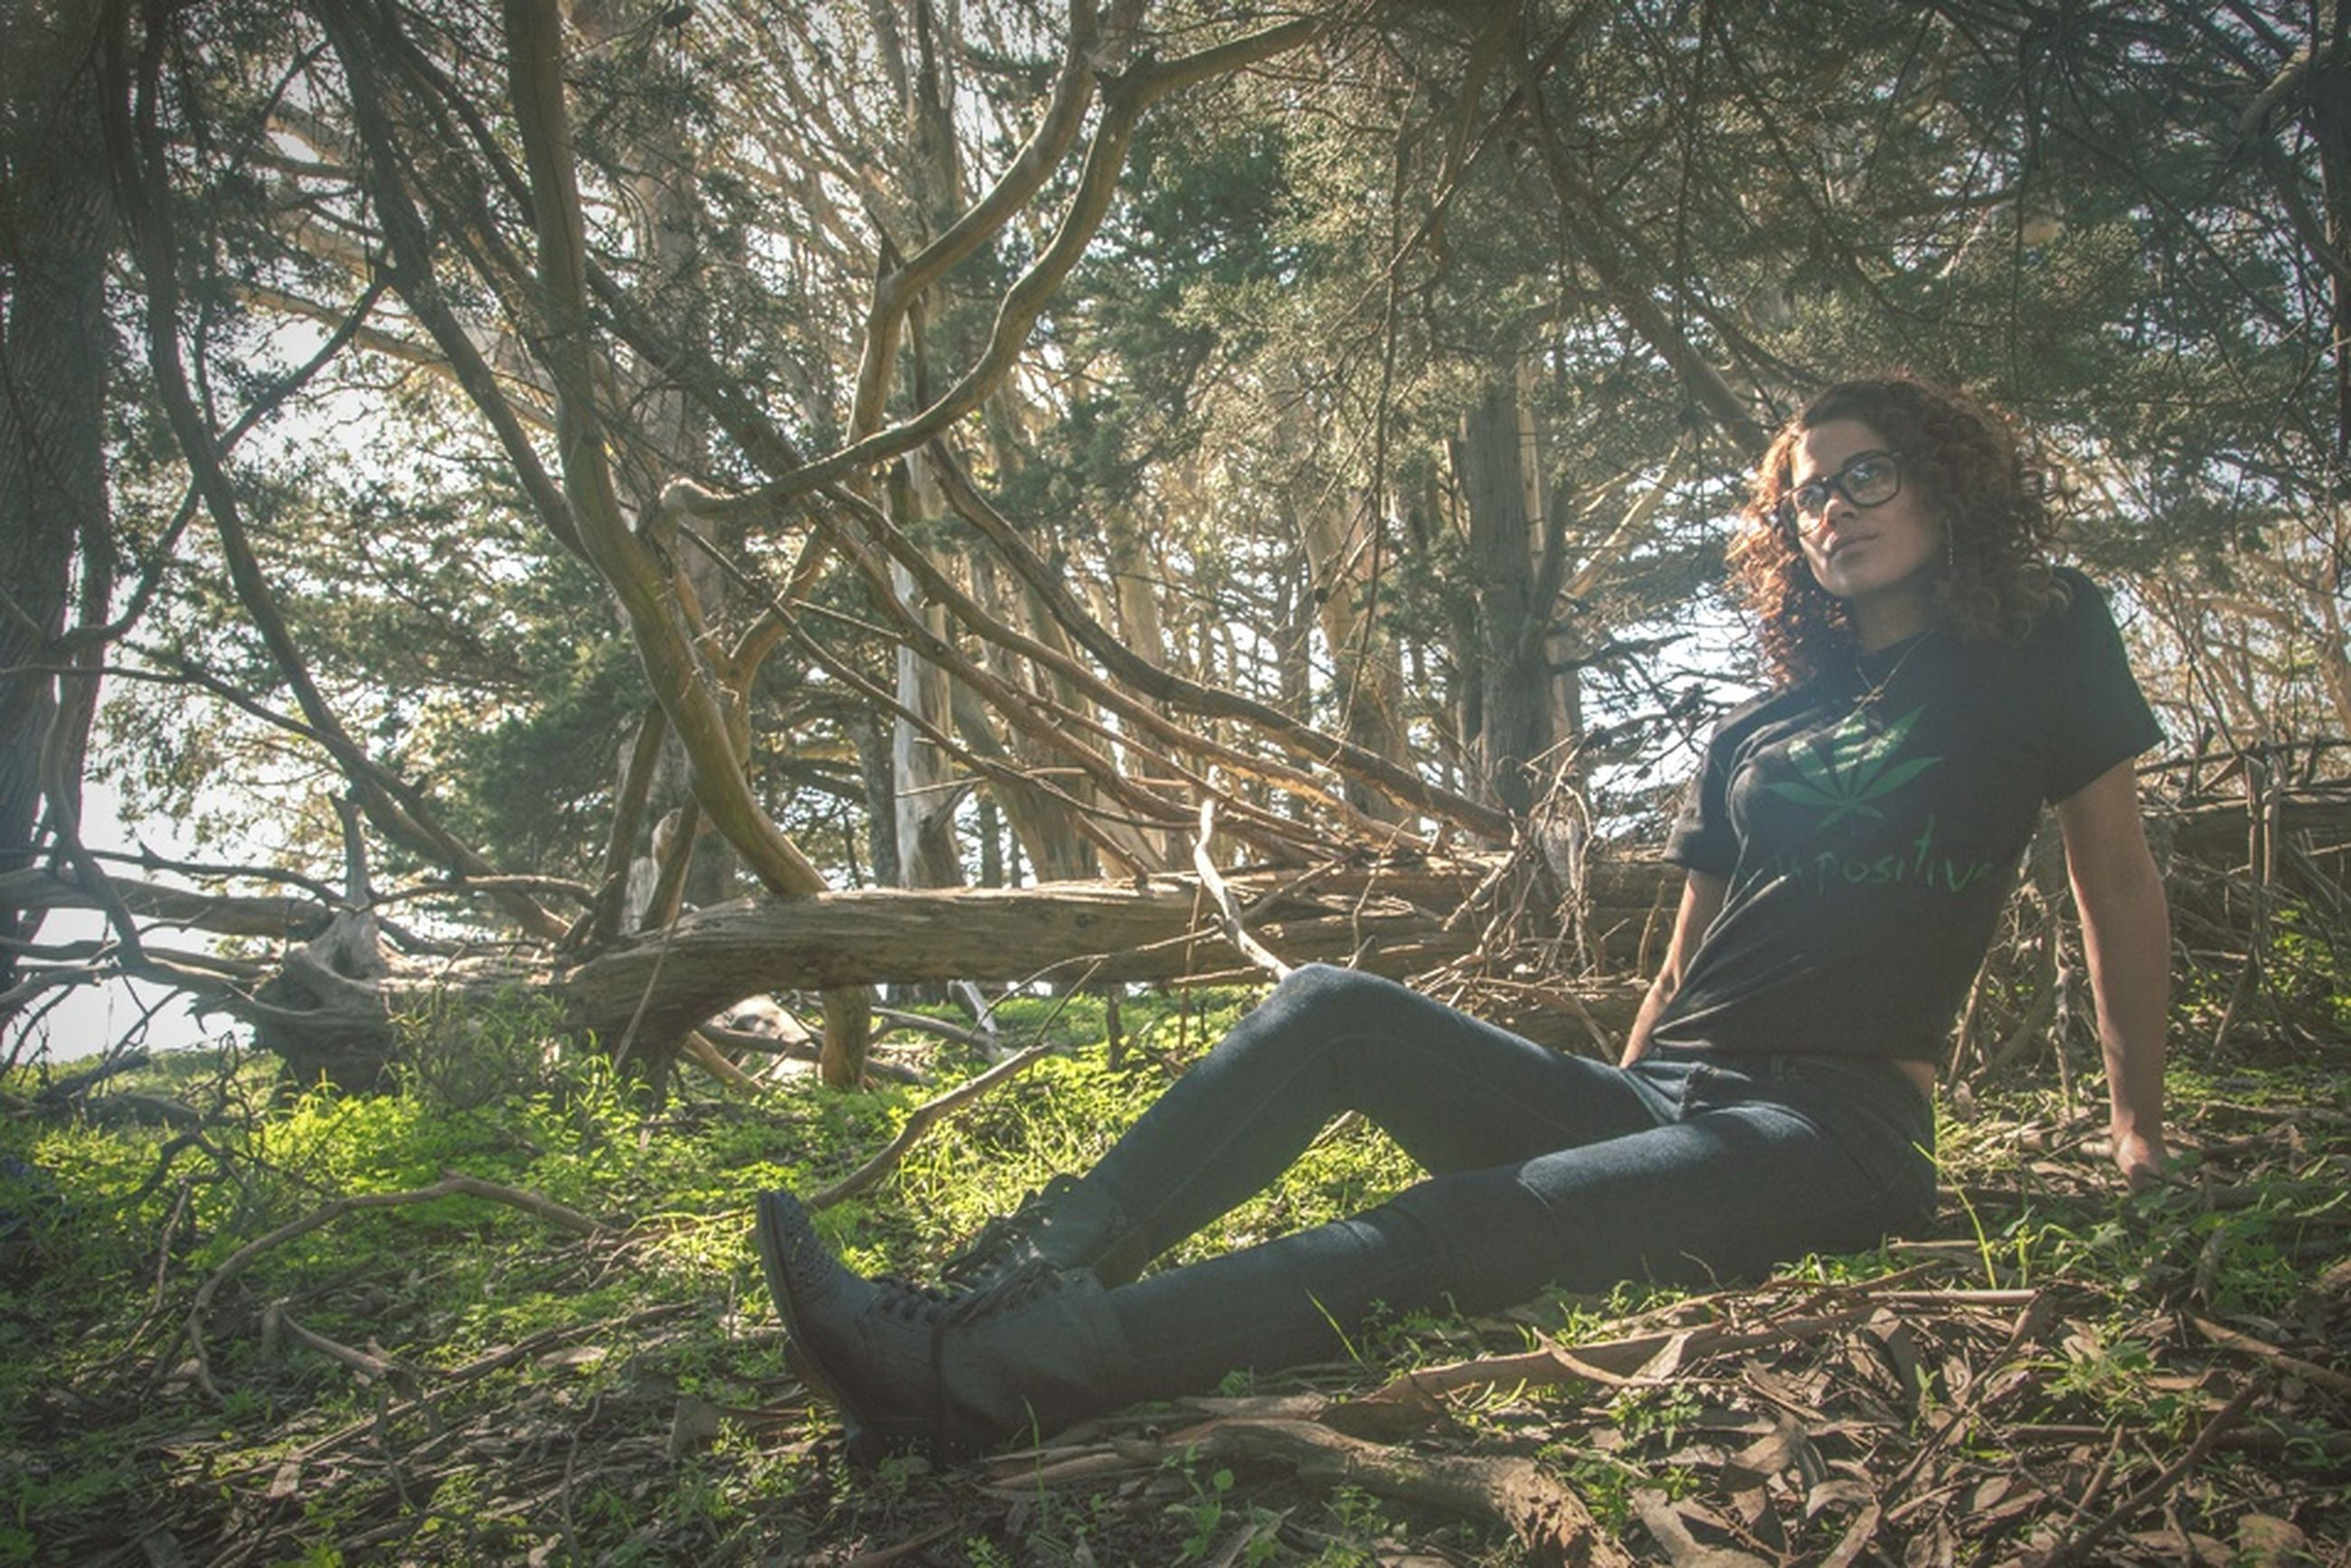 tree, lifestyles, leisure activity, young adult, casual clothing, young women, sitting, person, forest, tree trunk, relaxation, full length, side view, nature, tranquility, standing, growth, three quarter length